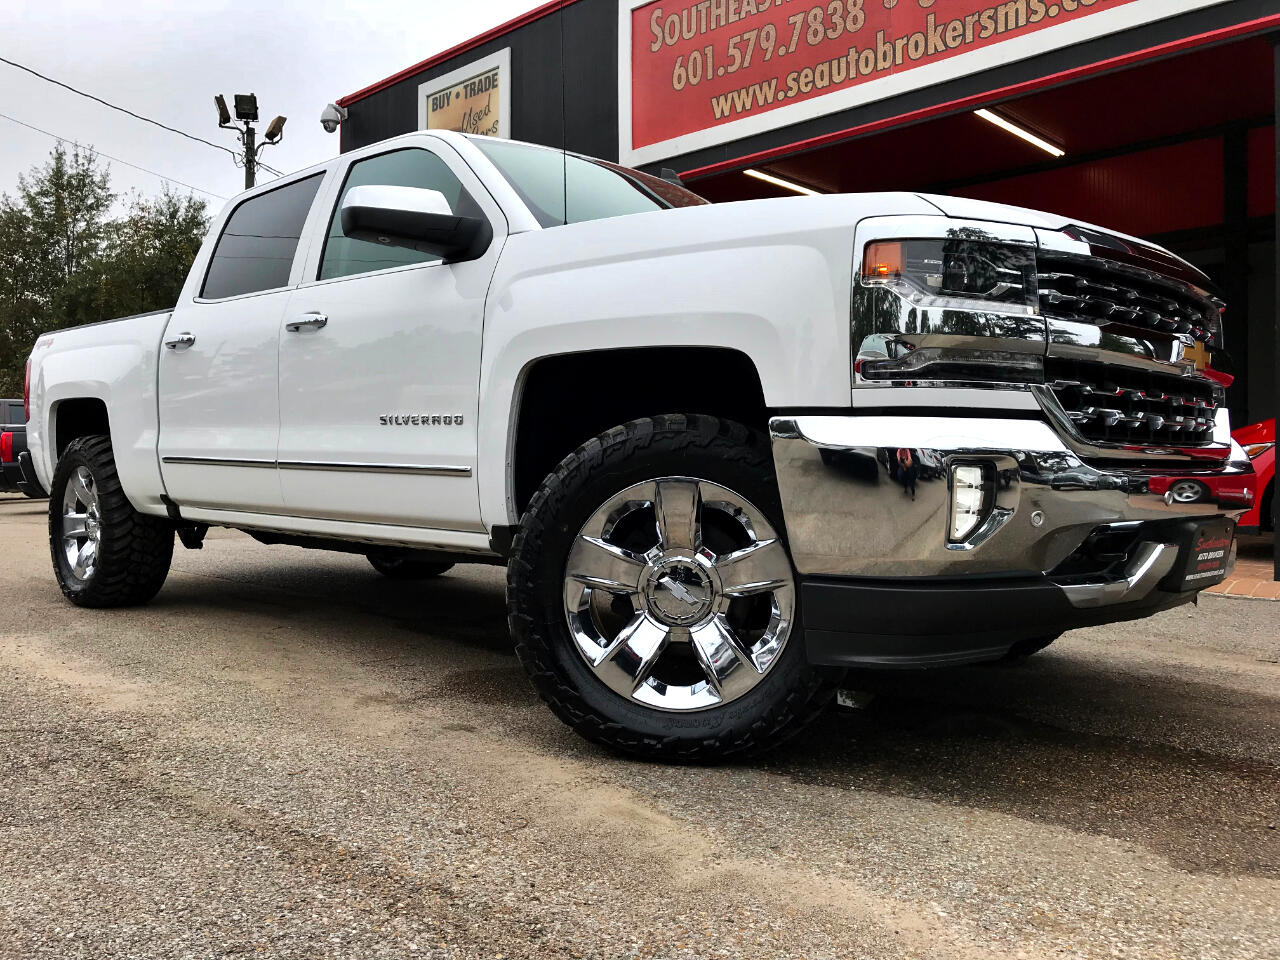 2016 Chevrolet Silverado 1500 LTZ CREW CAB SHORT BED 4WD LEVELED